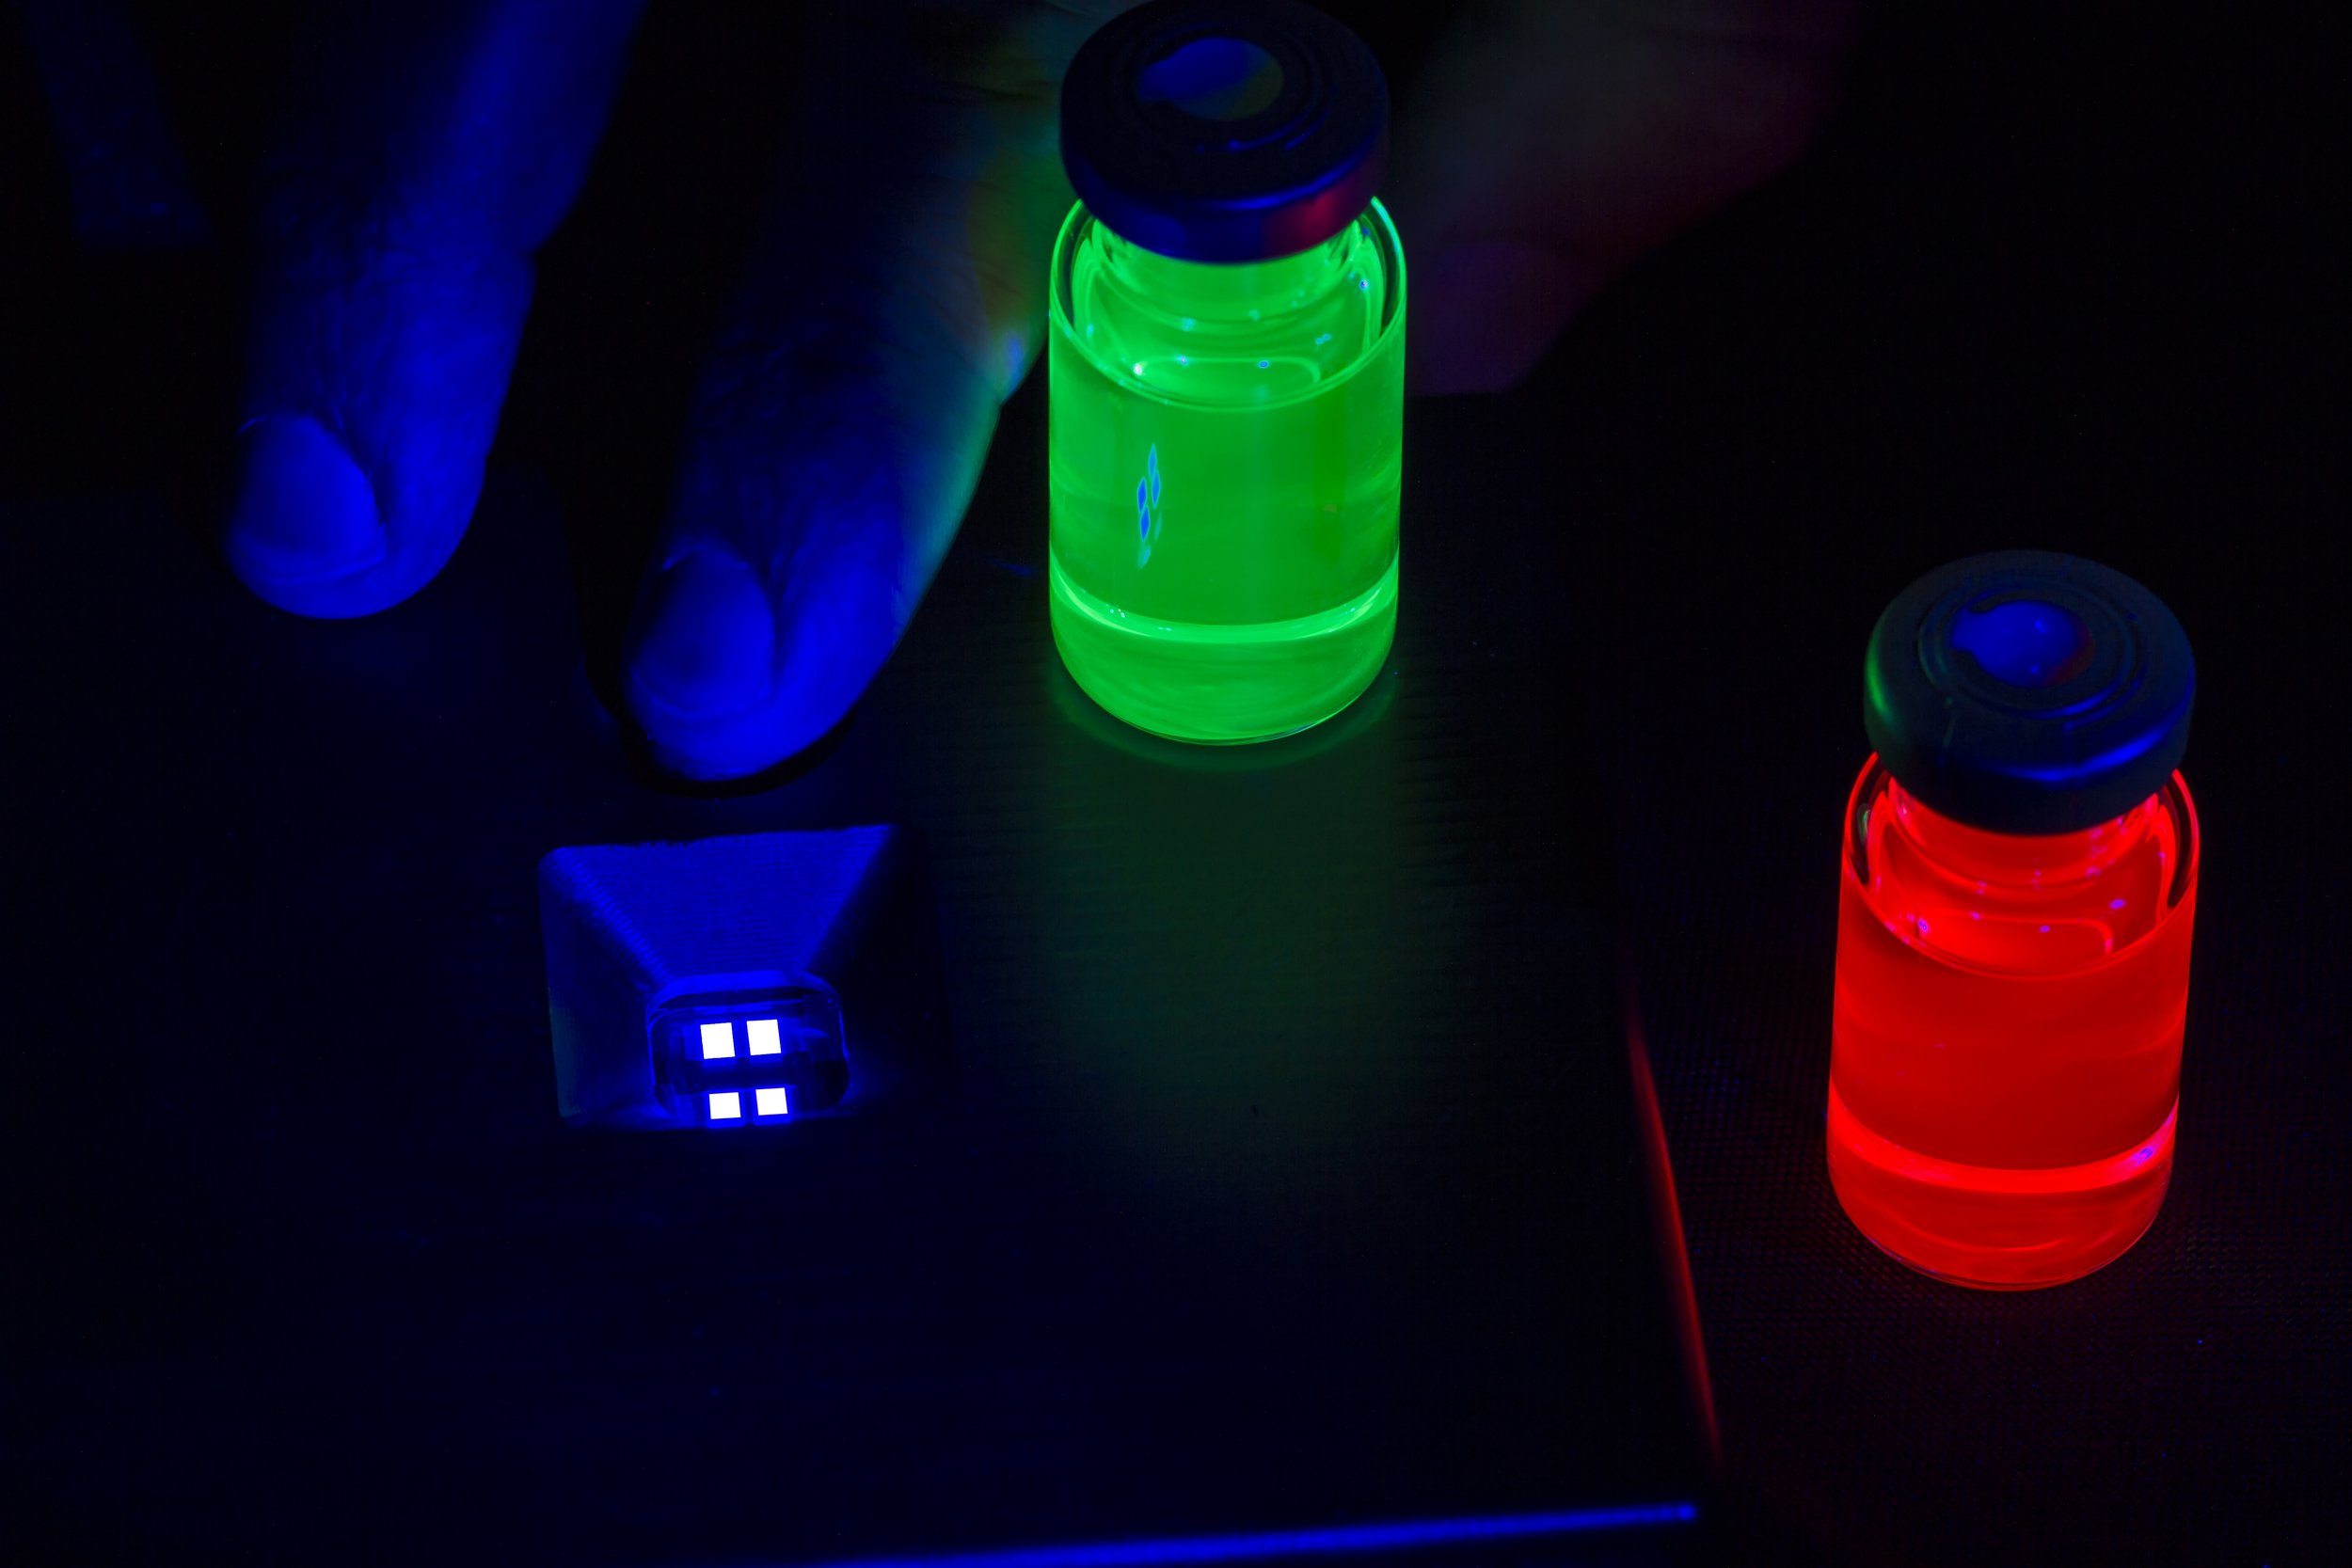 Nanosys Blue Heavy Metal Free Electroluminescent Quantum Dots next to red and green Photo Emissive Quantum Dots